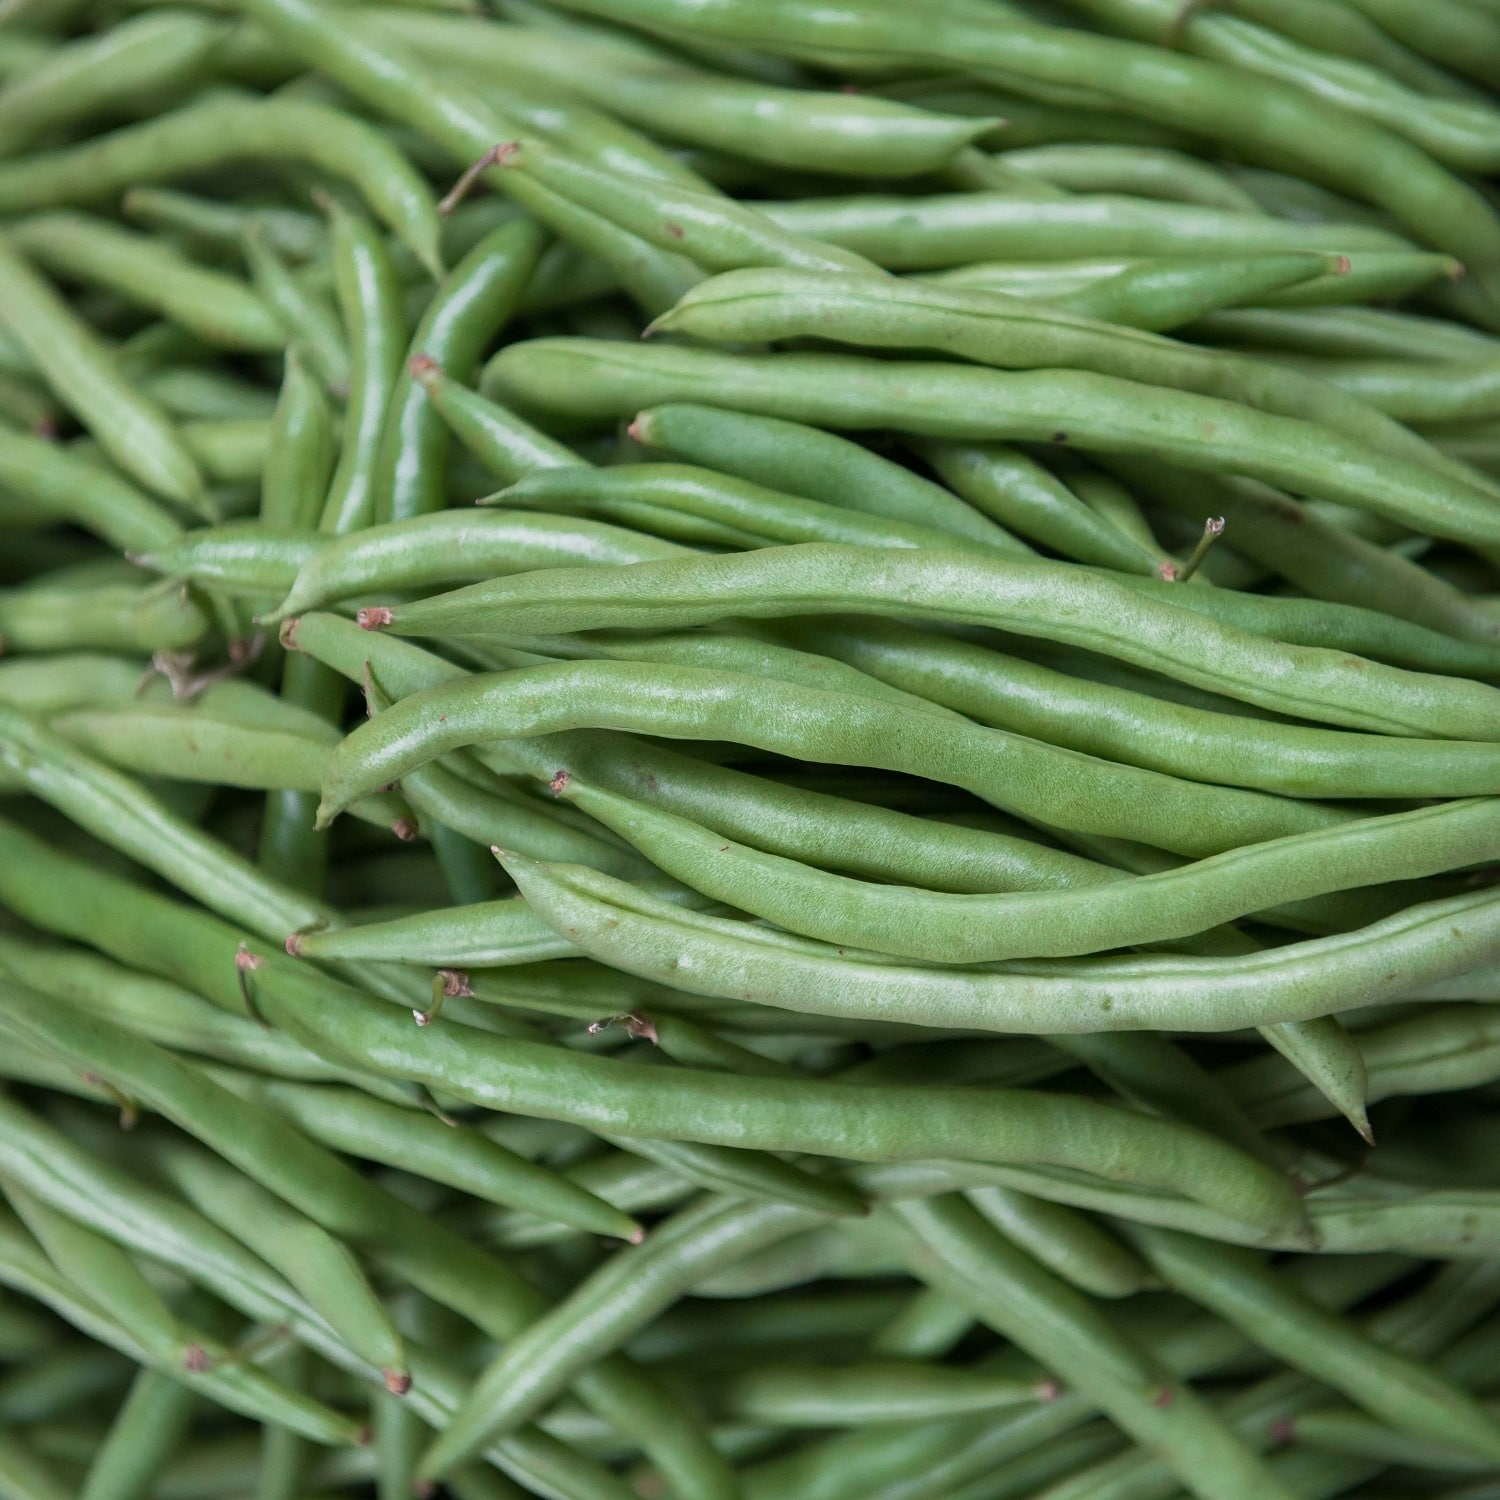 close up of a pile of green beans